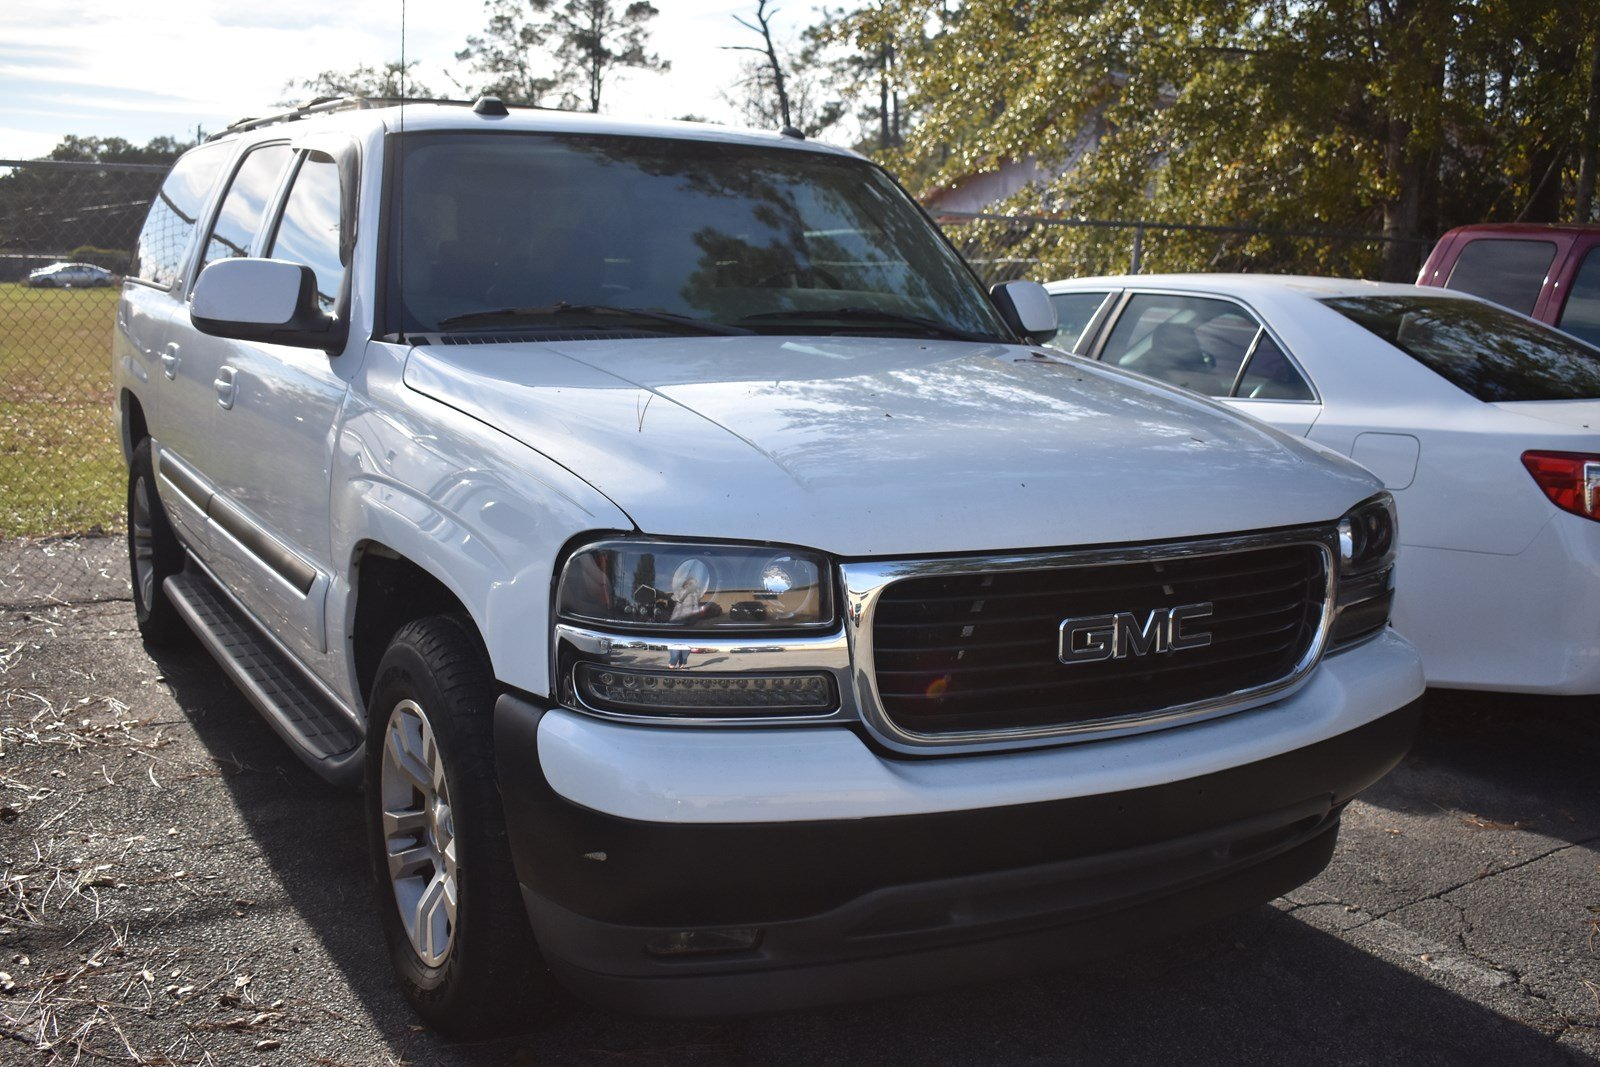 Featured Used 2005 GMC Yukon XL SLT 1500 SLT for sale in Waycross, GA